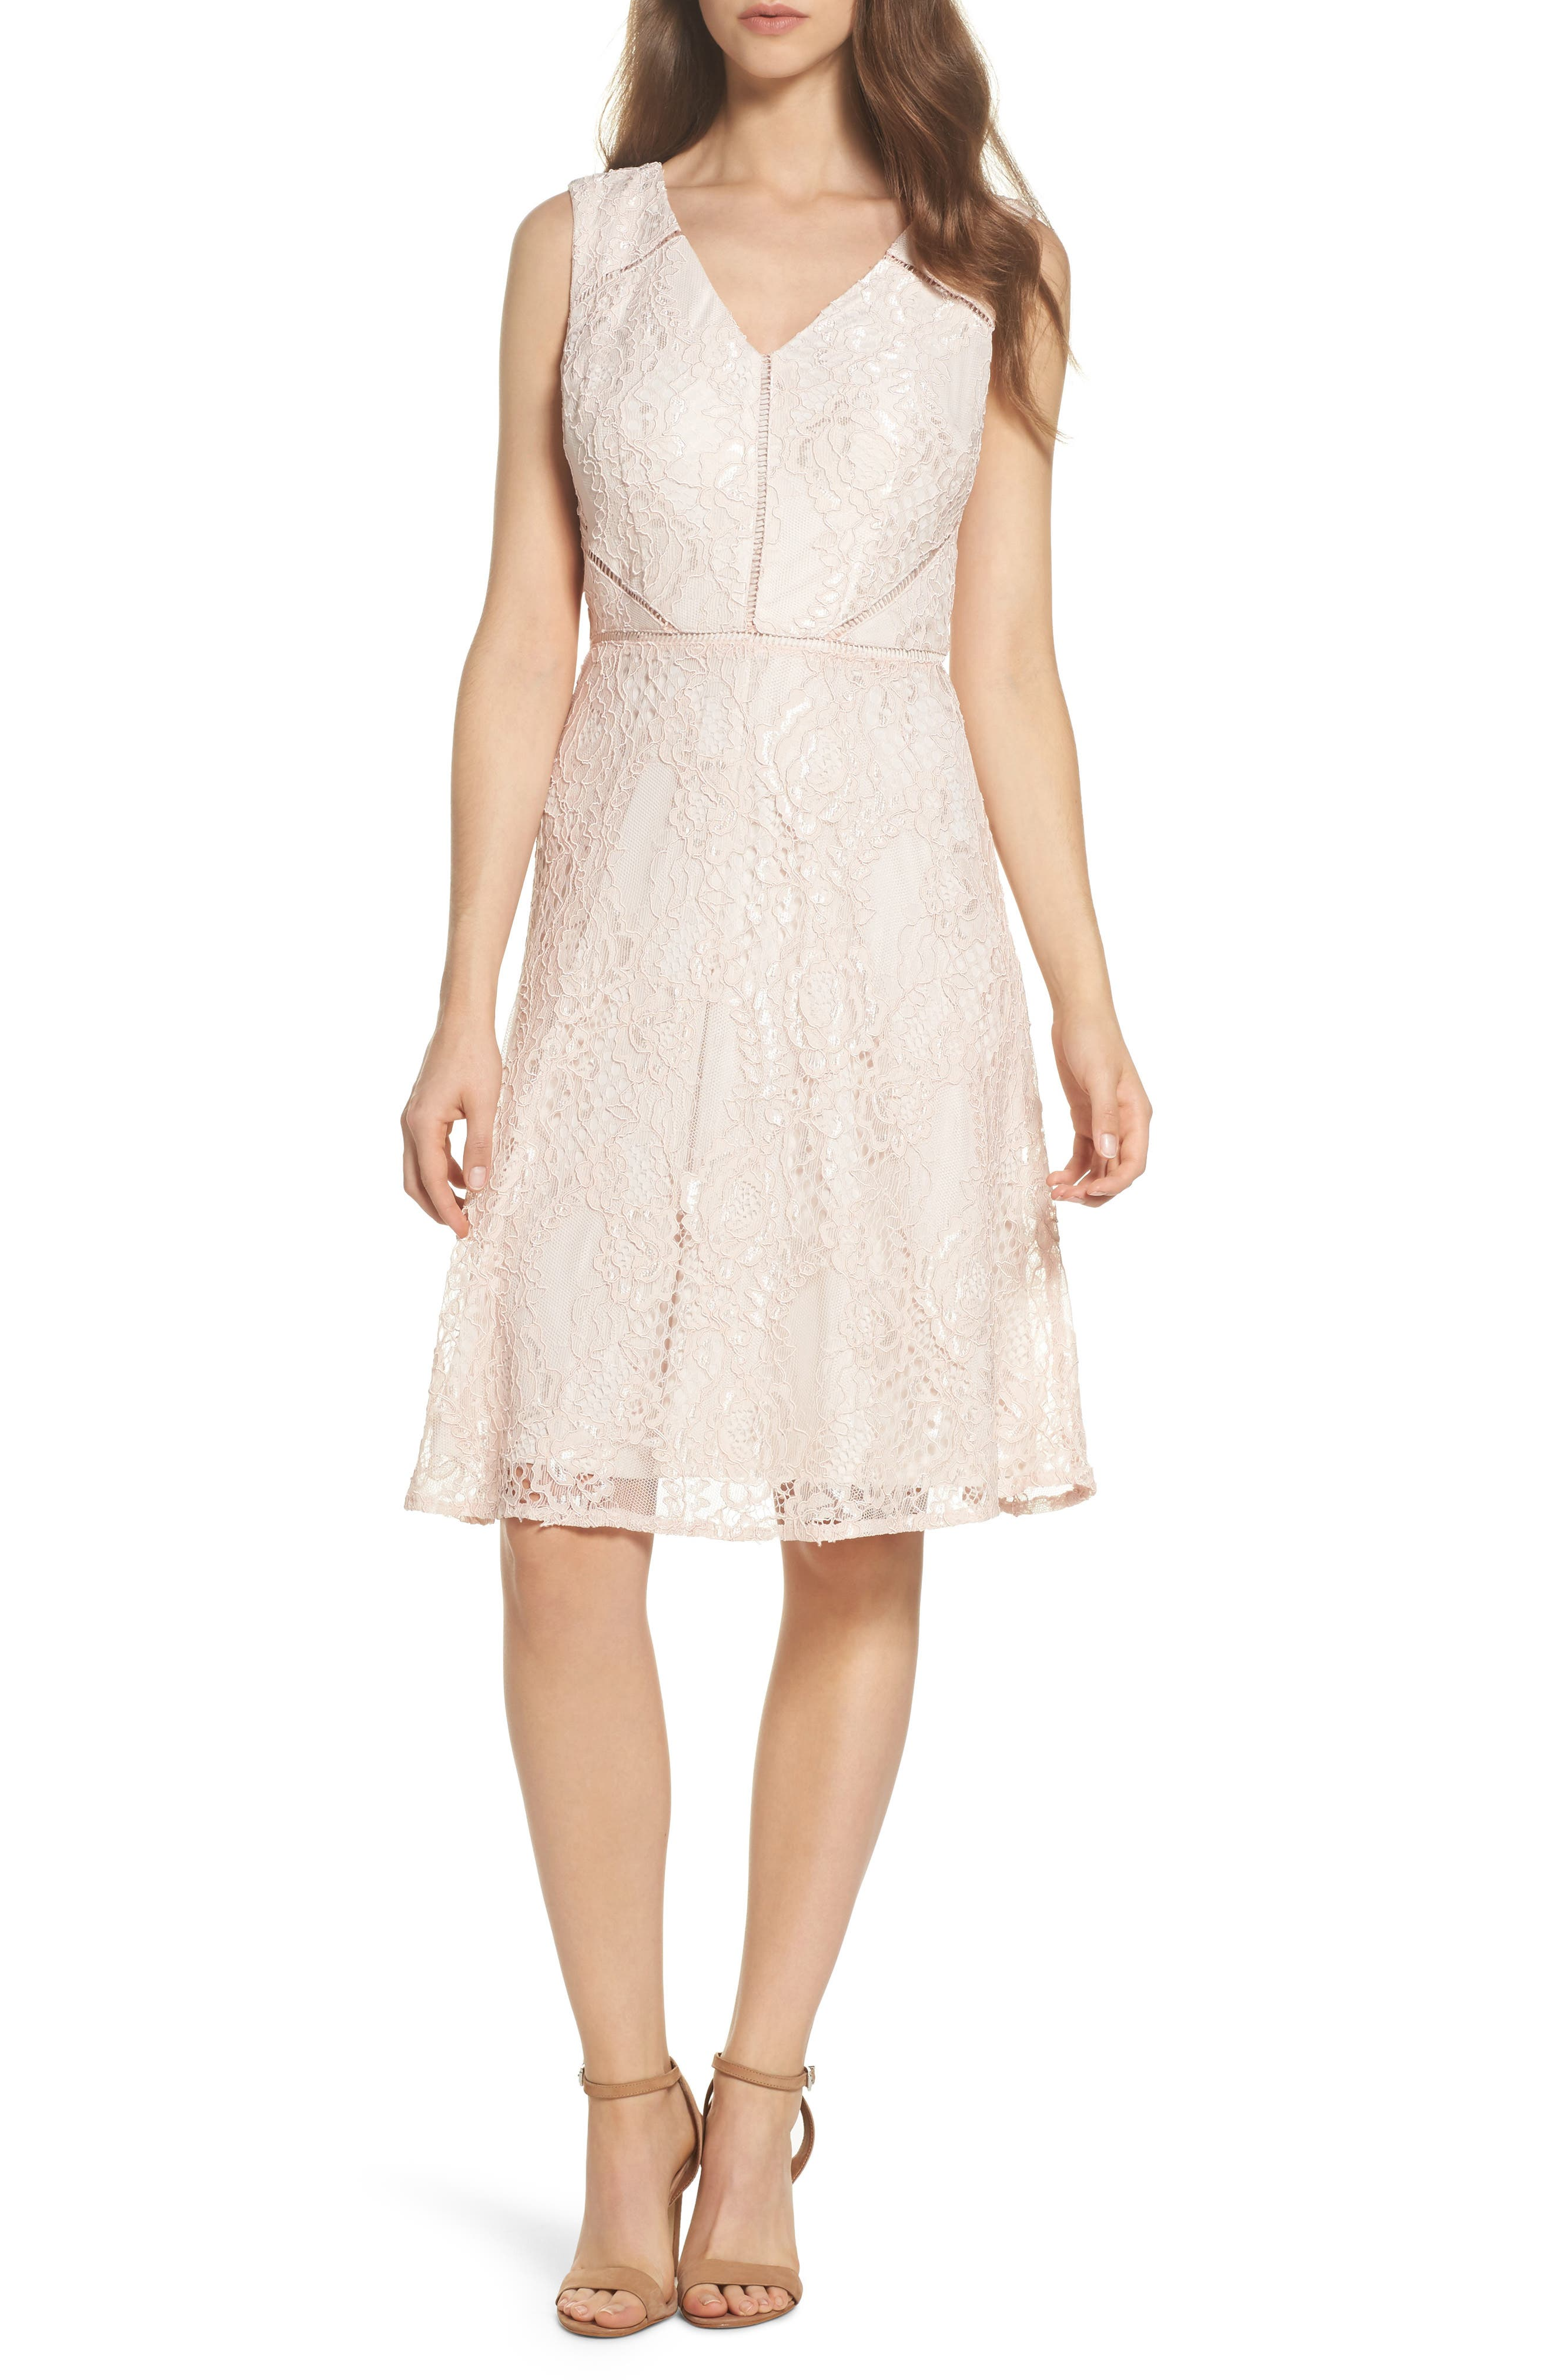 Alternate Image 1 Selected - Adrianna Papell Rose Lace Fit & Flare Dress